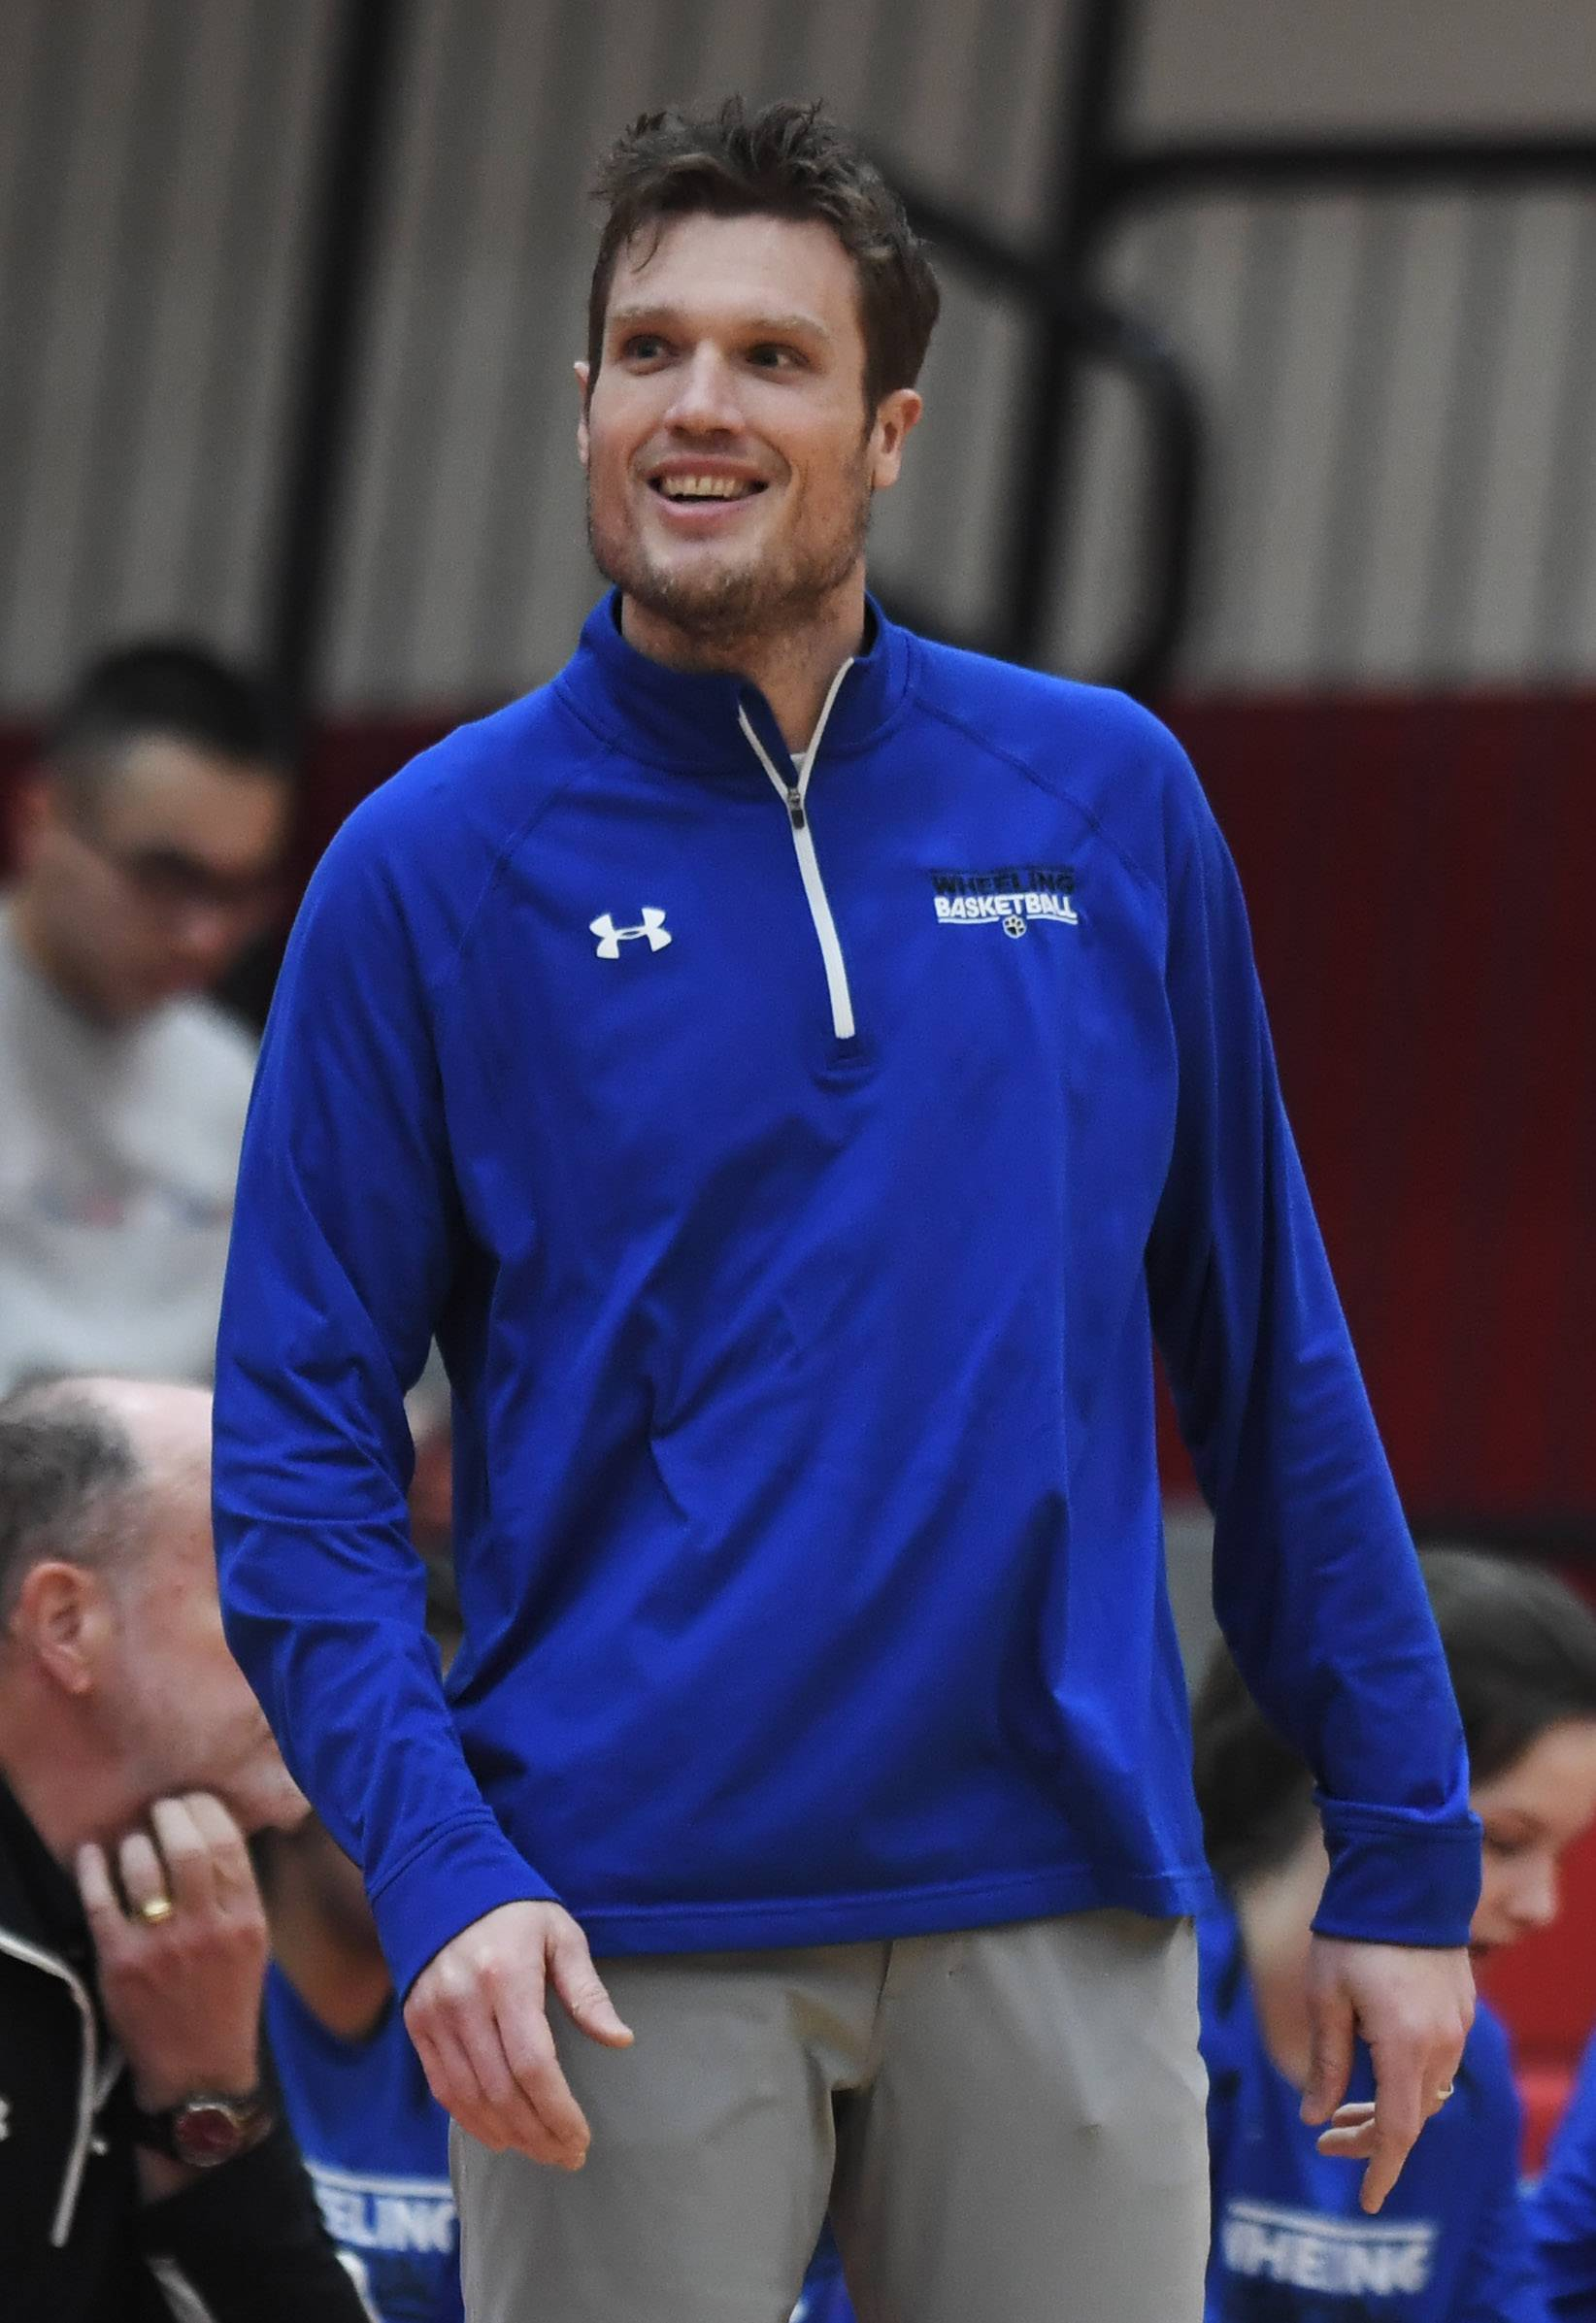 Wheeling girls basketball head coach Matt Weber leads his team during Tuesday's game at Palatine.